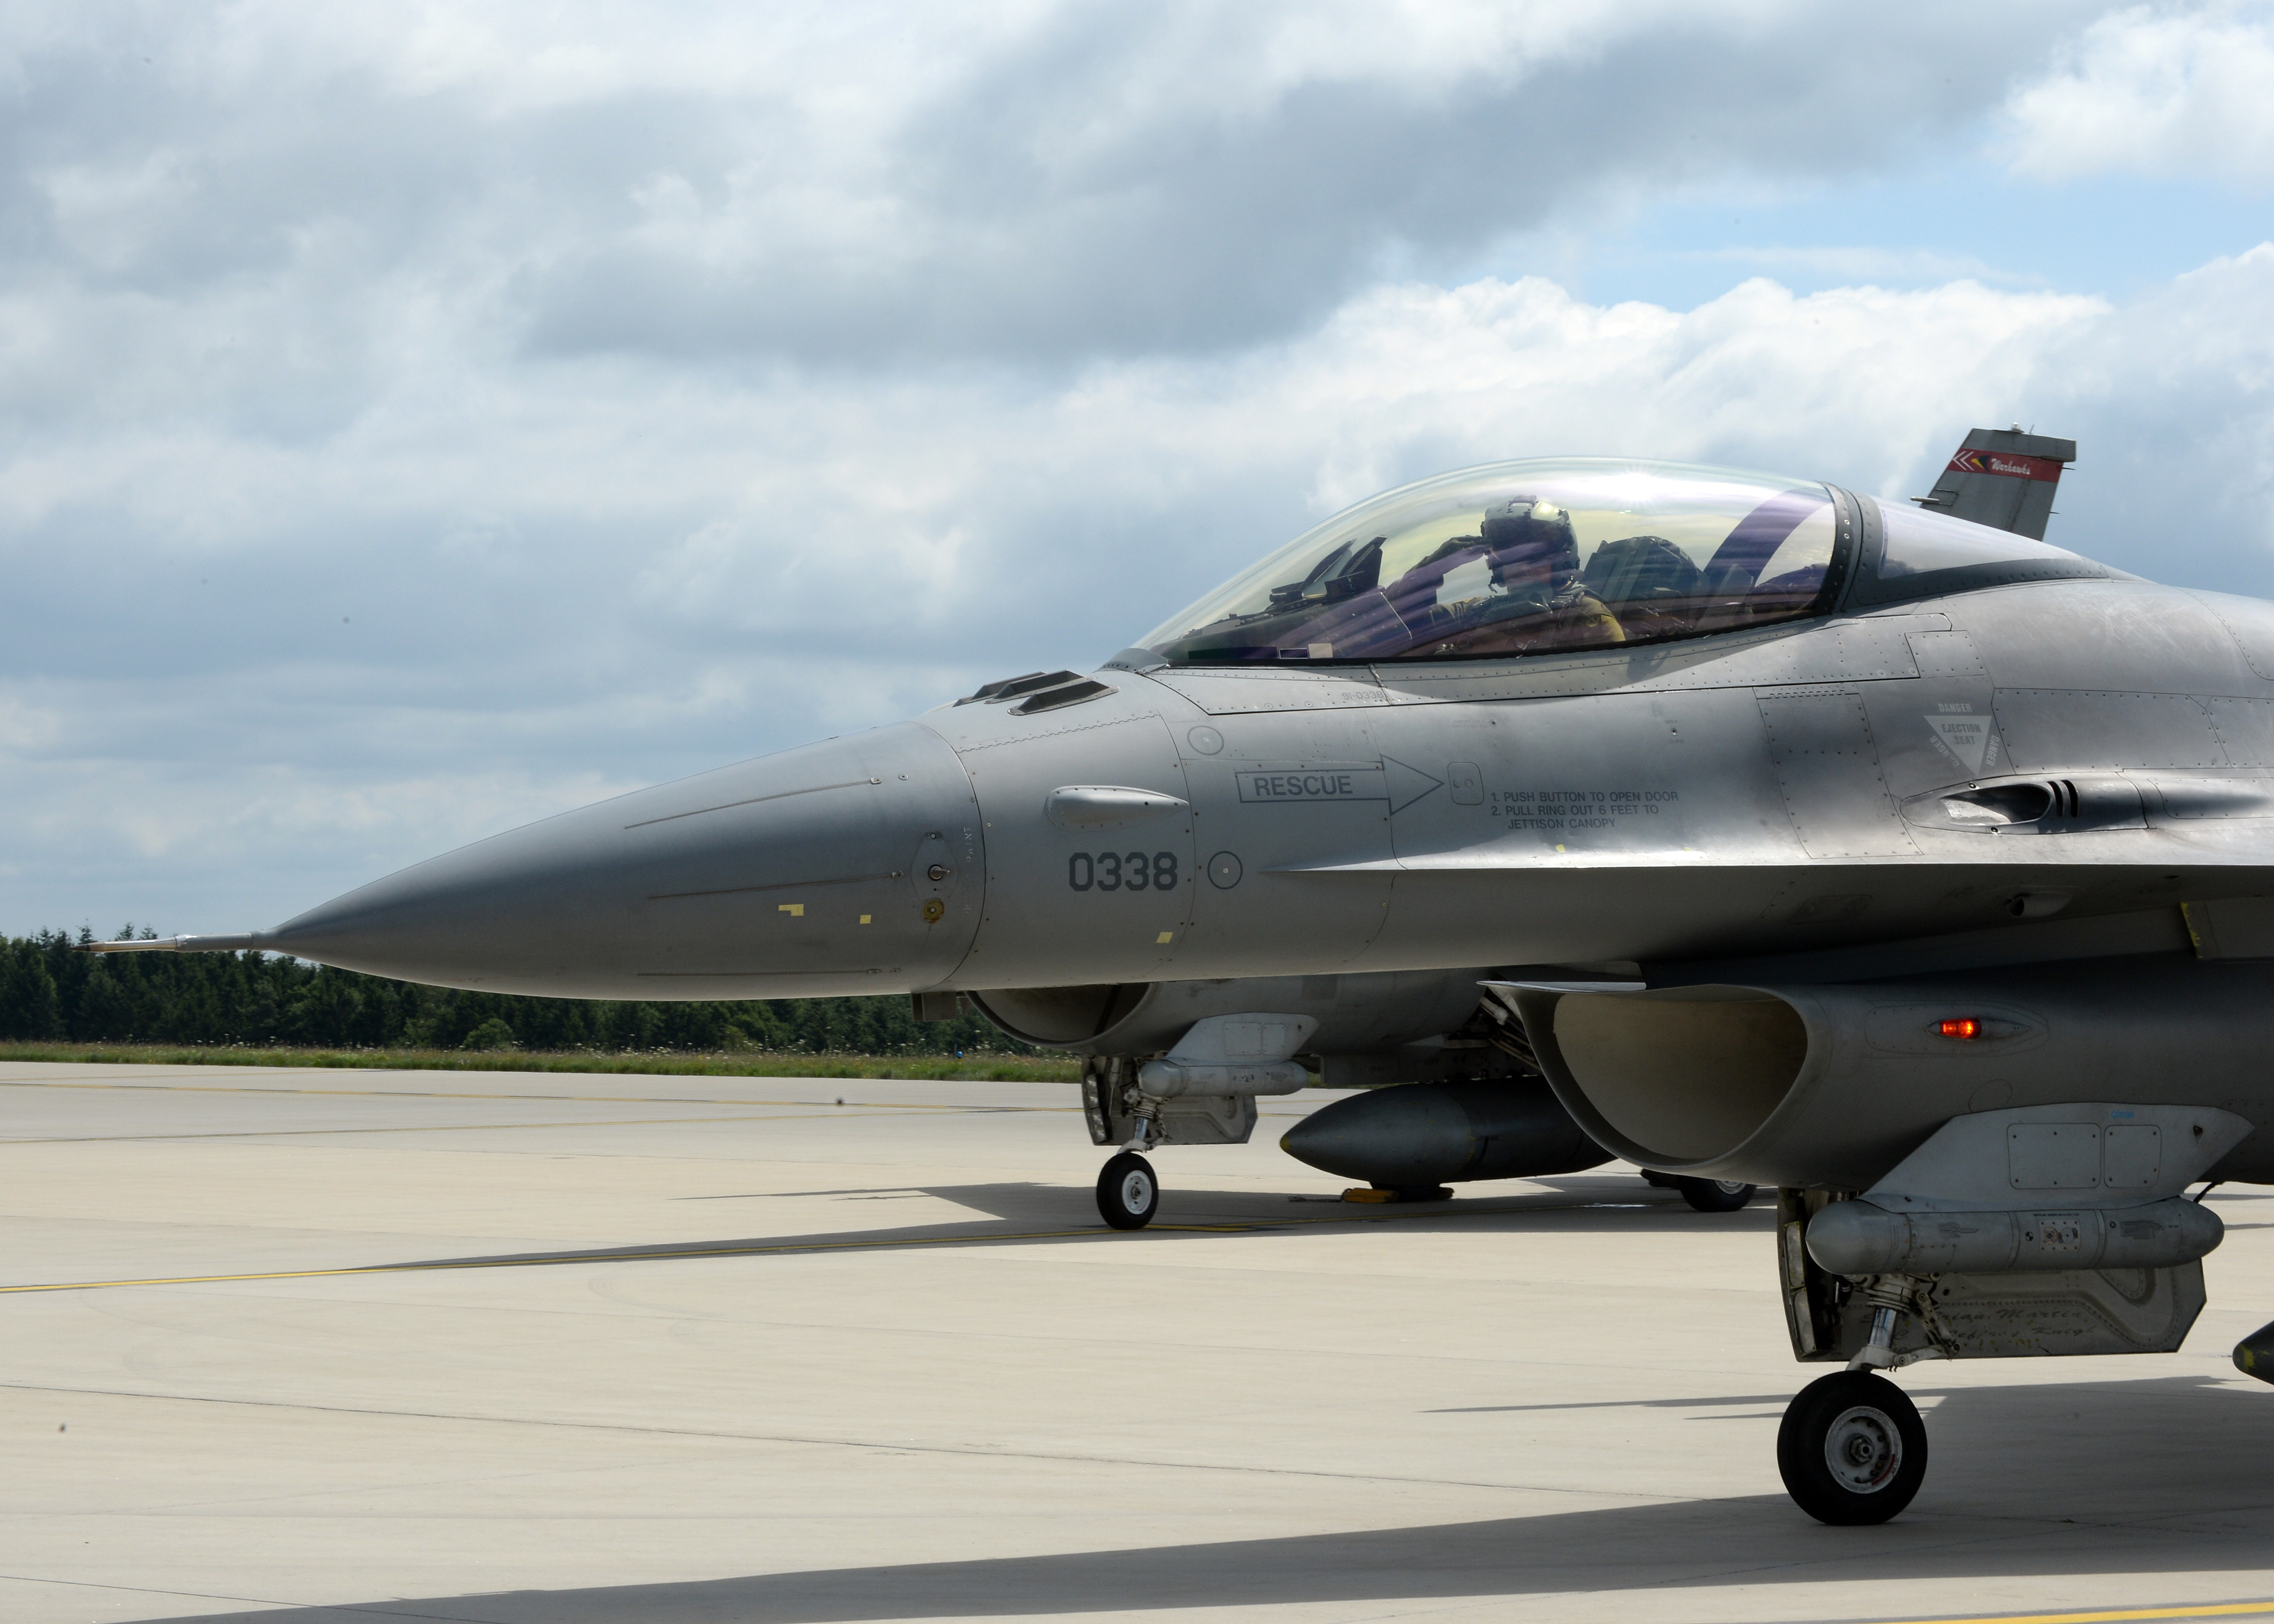 PHOTO DETAILS / DOWNLOAD HI-RES 2 ... & New commander brings passion to Spangdahlem u003e u003cp styleu003dfont-size ...